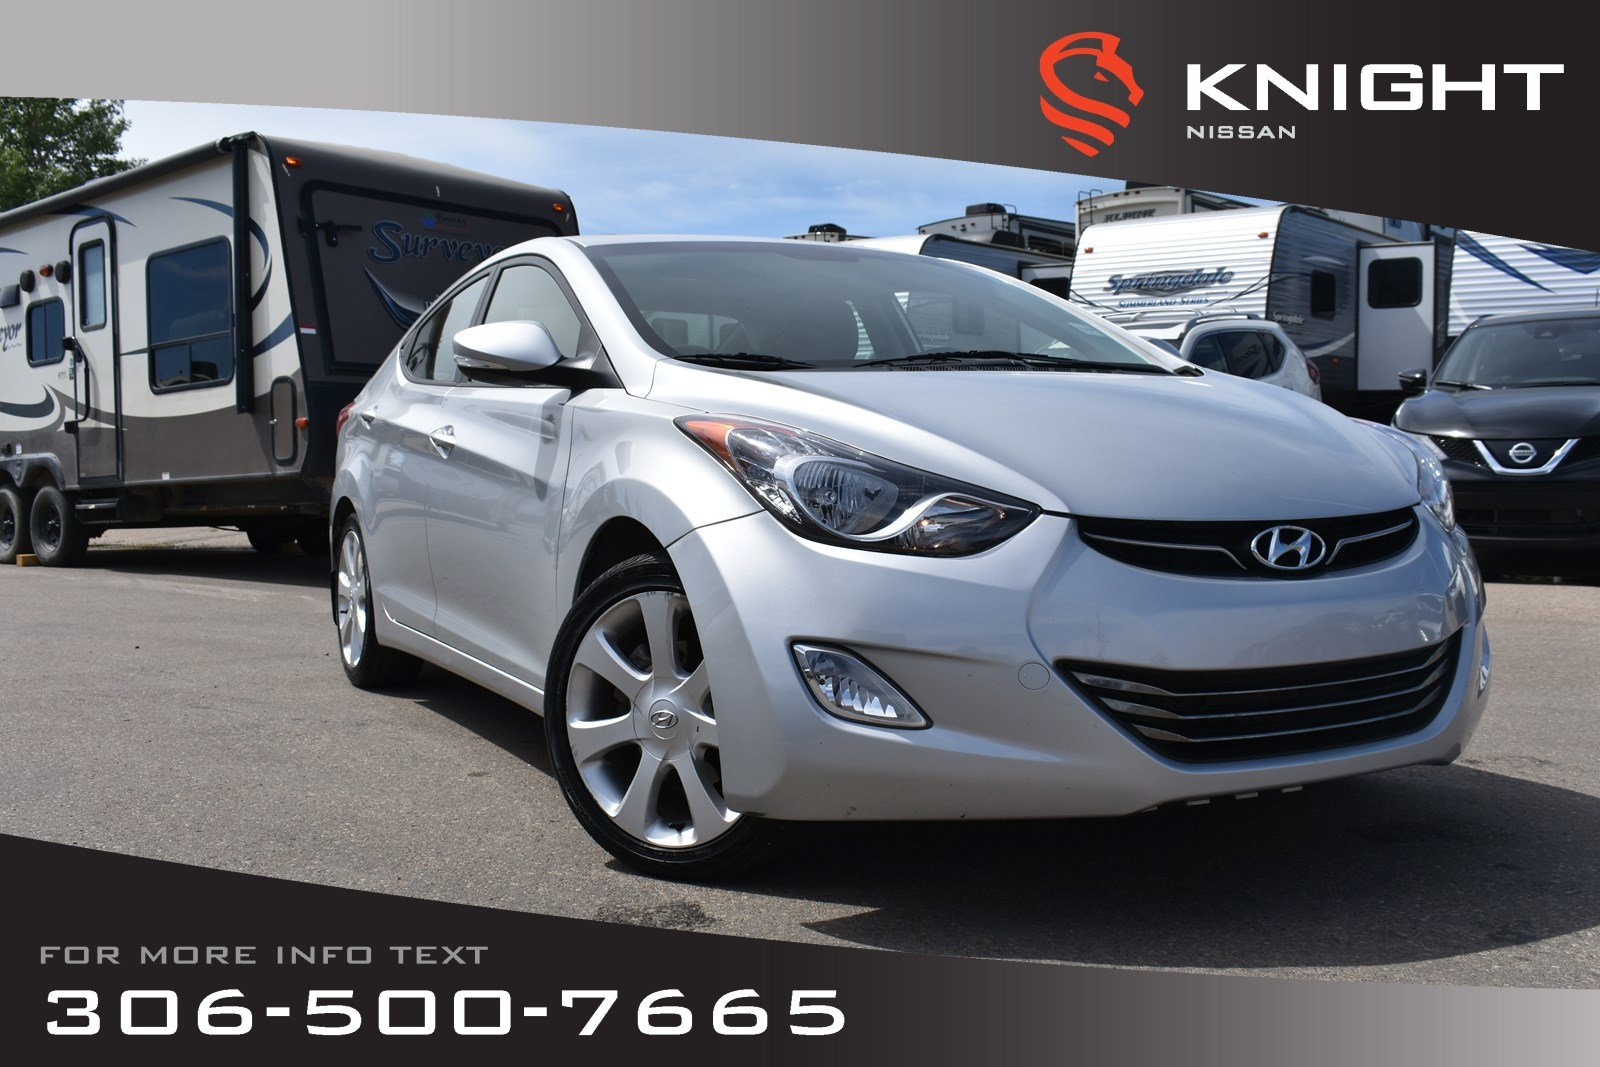 Pre-Owned 2011 Hyundai Elantra Limited Leather | Remote Start | Heated Seats